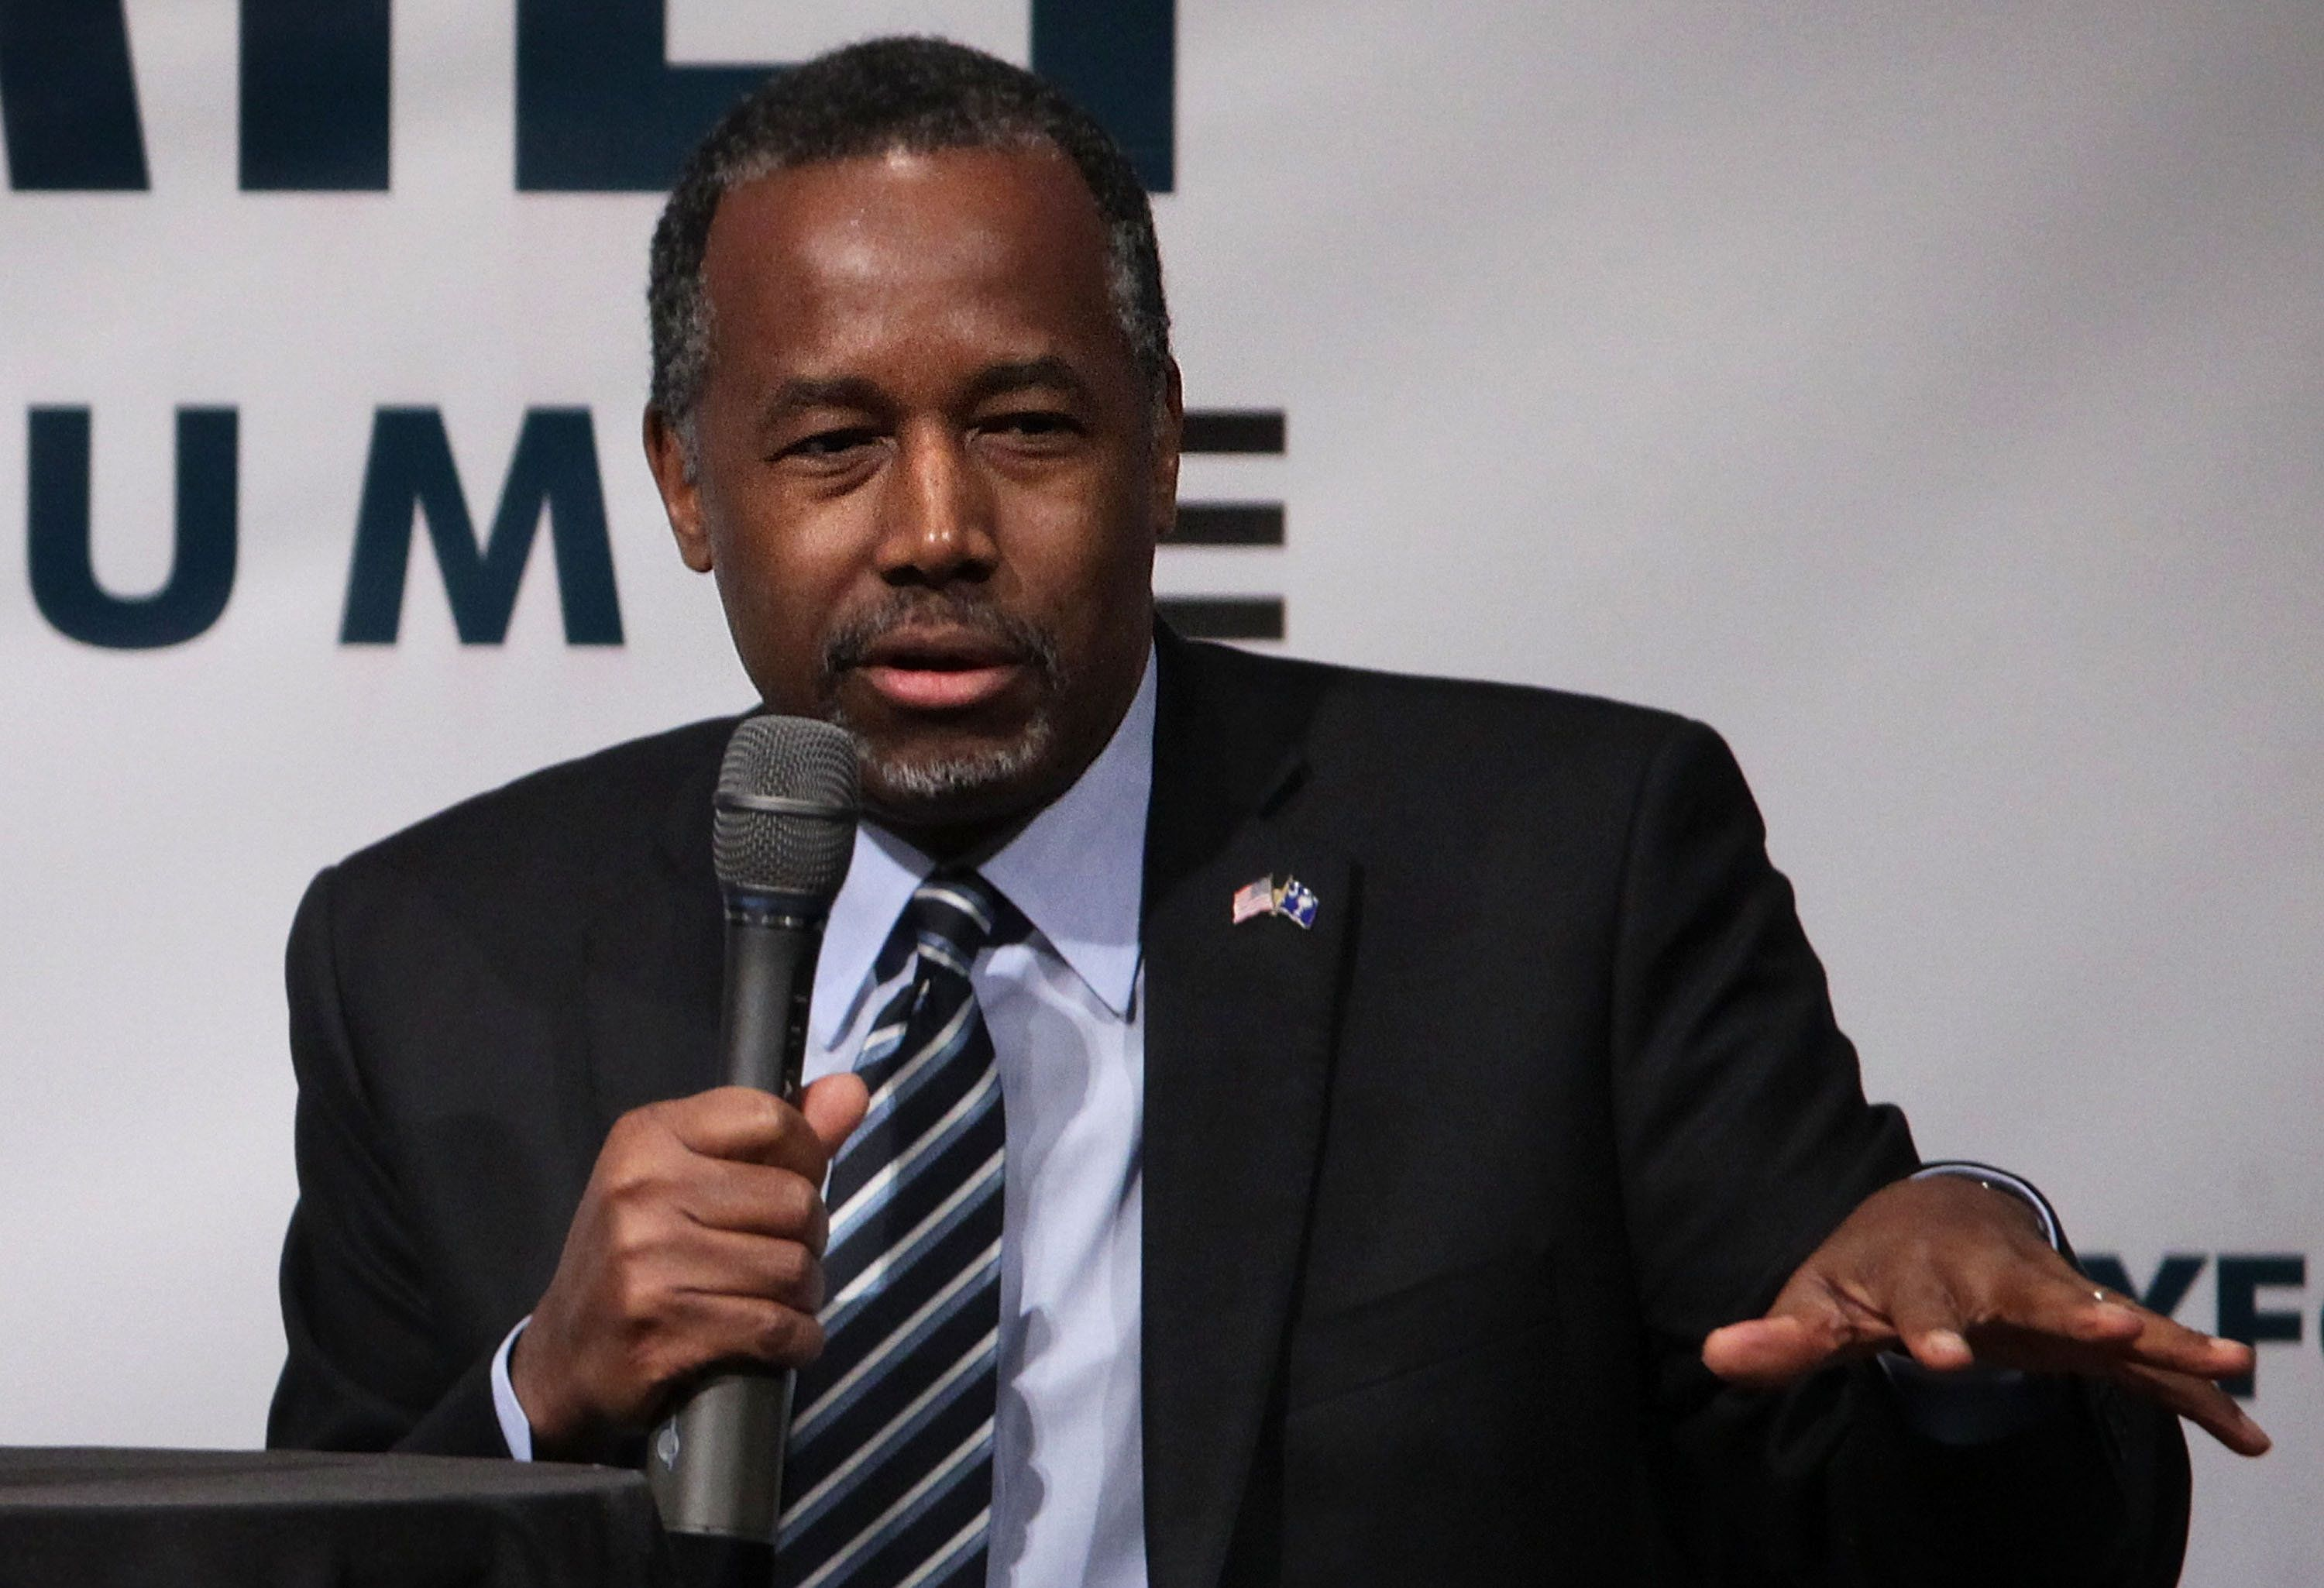 GOP presidential hopeful Ben Carson says he doesn't think it's possible to adhere to Sharia law and accept American values.